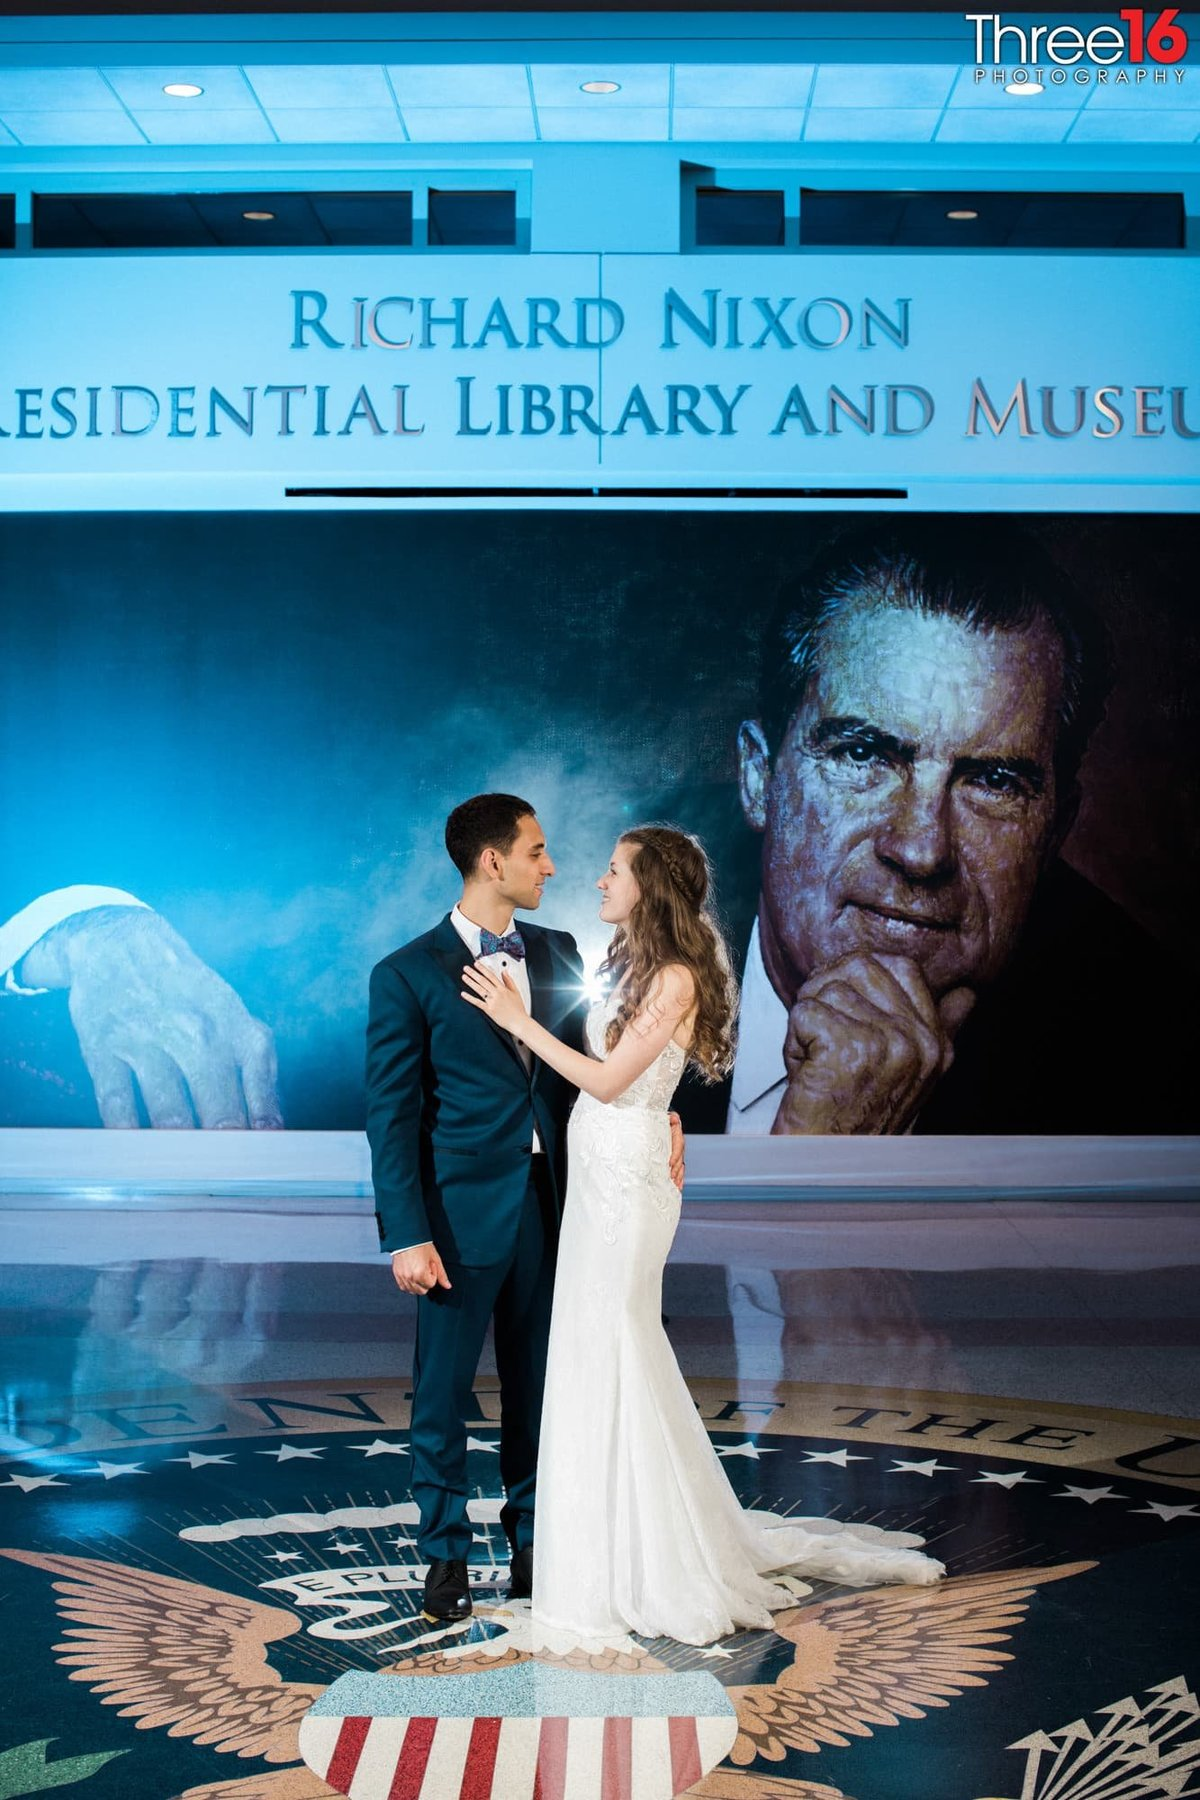 Richard Nixon Library Wedding Photo